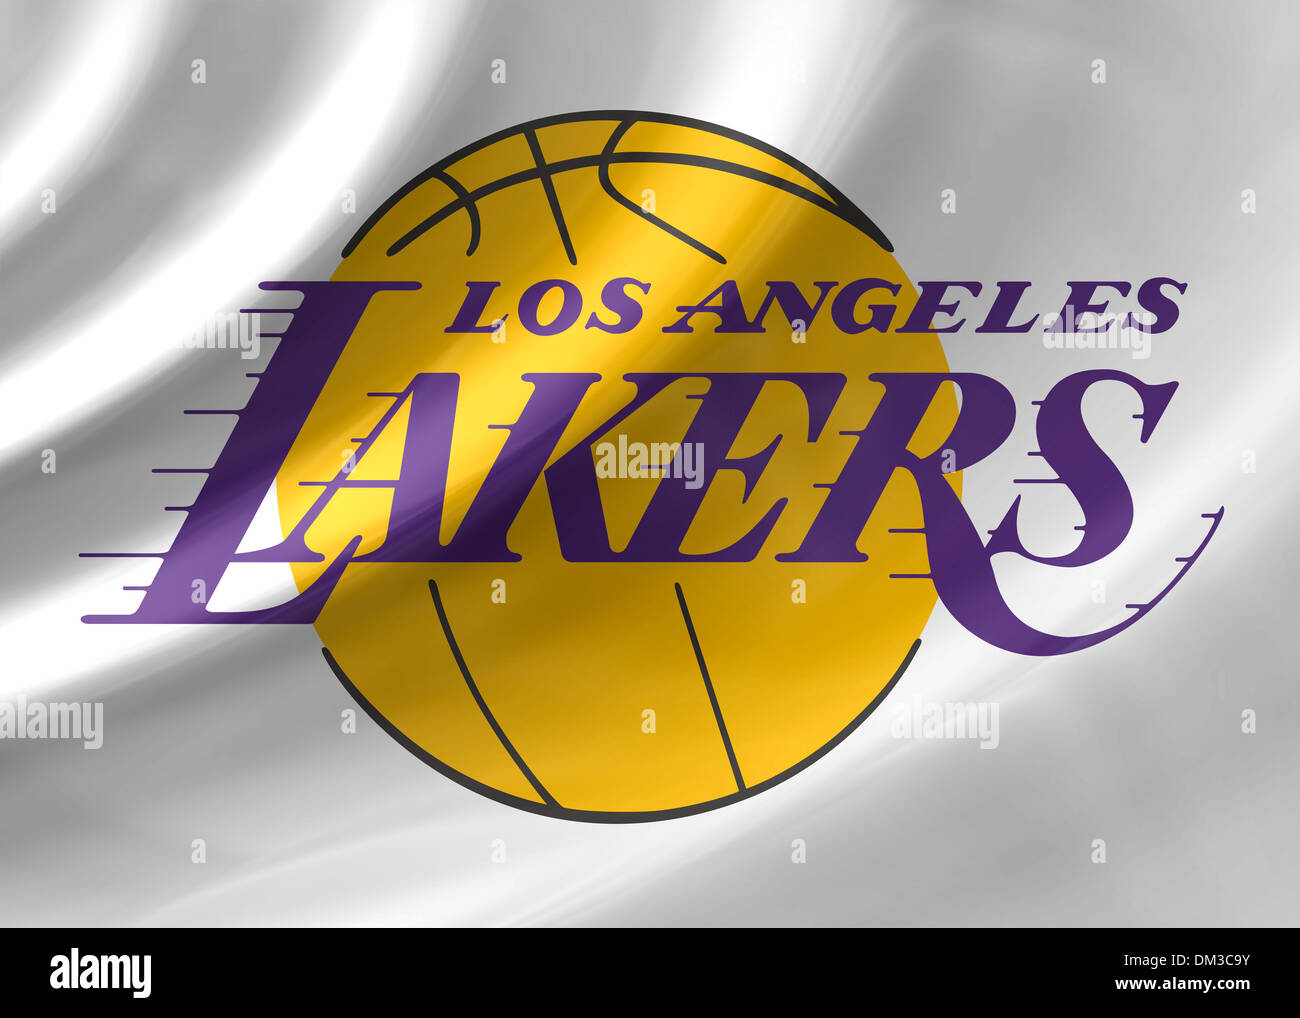 Los angeles lakers logo flag icon symbol emblem stock photo los angeles lakers logo flag icon symbol emblem voltagebd Image collections